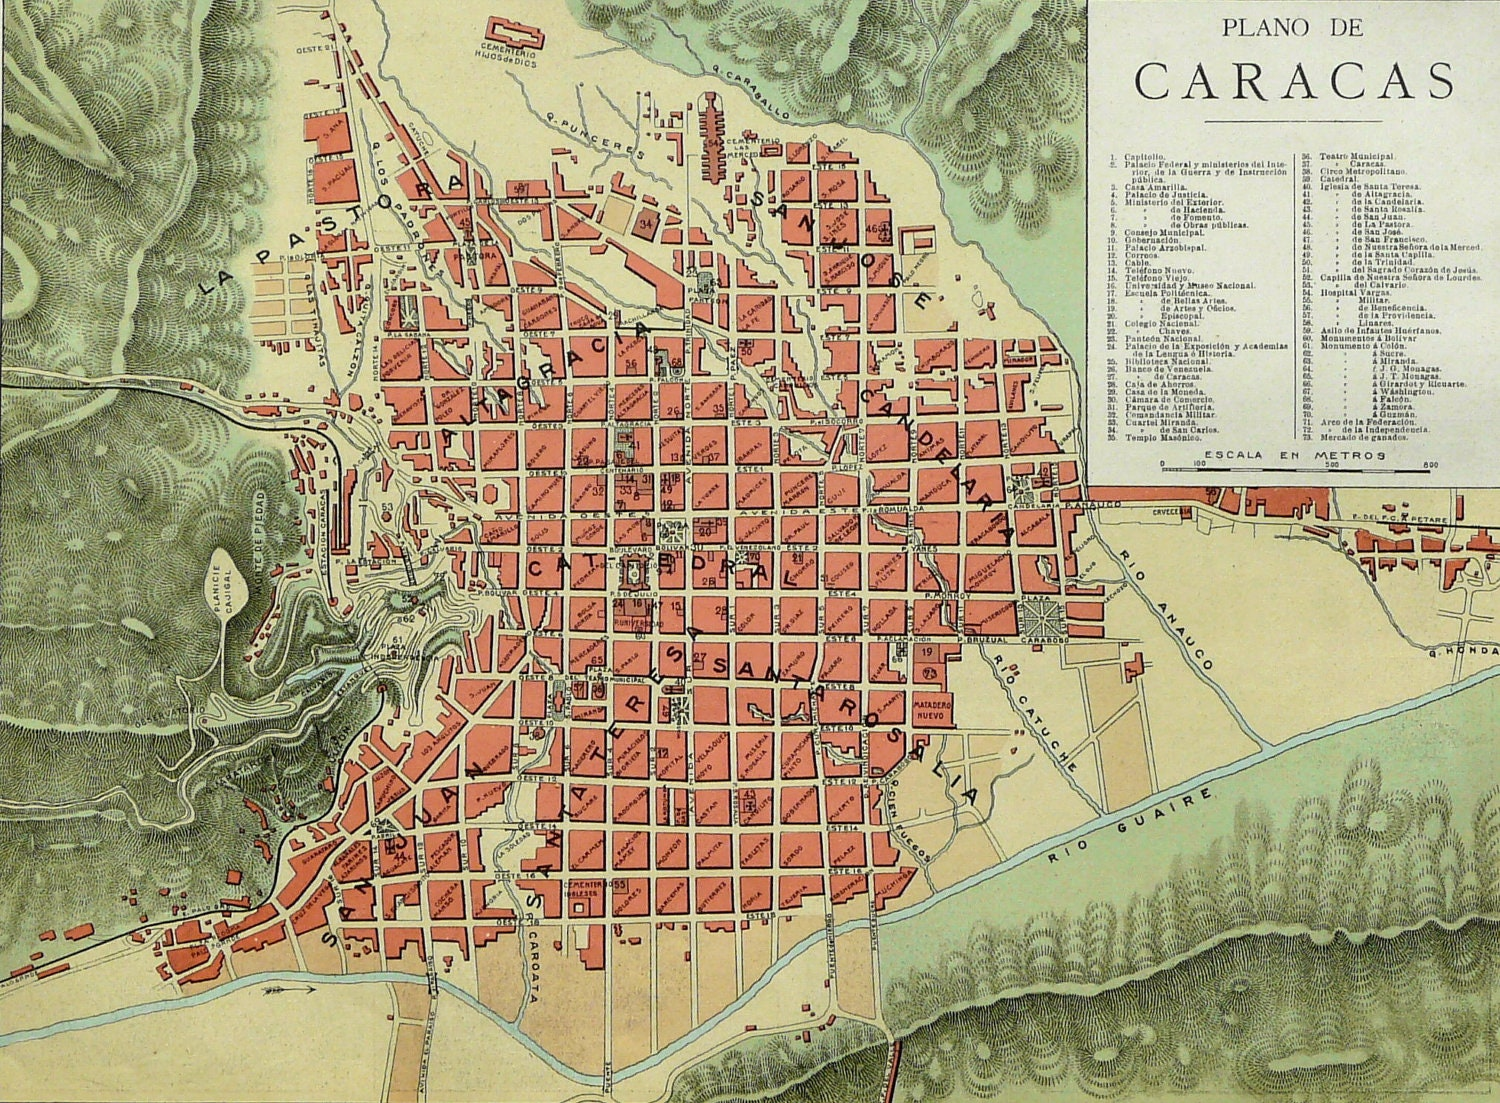 1900 Antique rare city map of CARACAS by AntiquePrintsOnly on Etsy Caracas Map